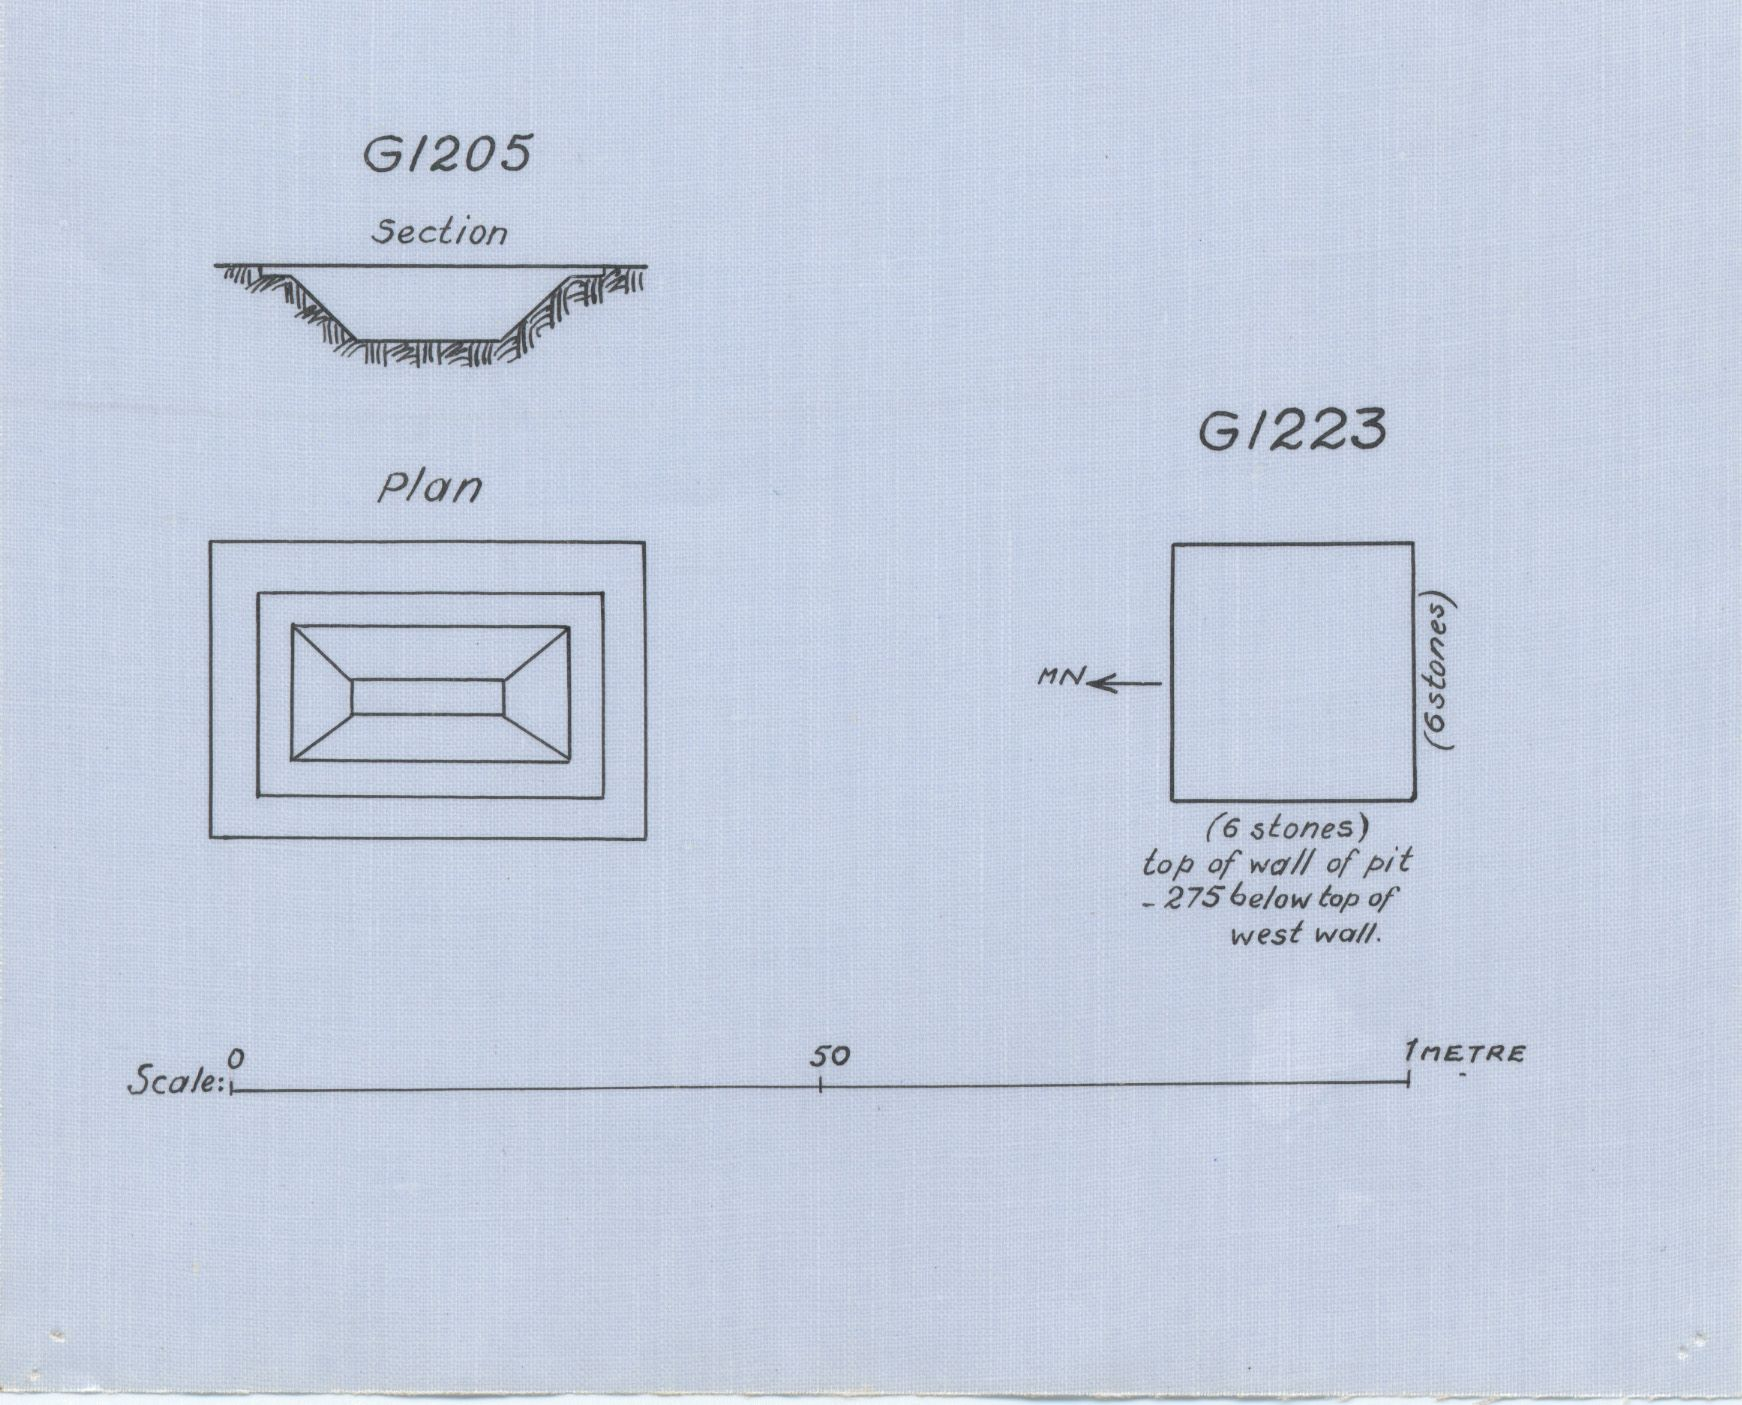 Maps and plans: Plan of pit G 1223 & Drawing of offering basin from G 1205